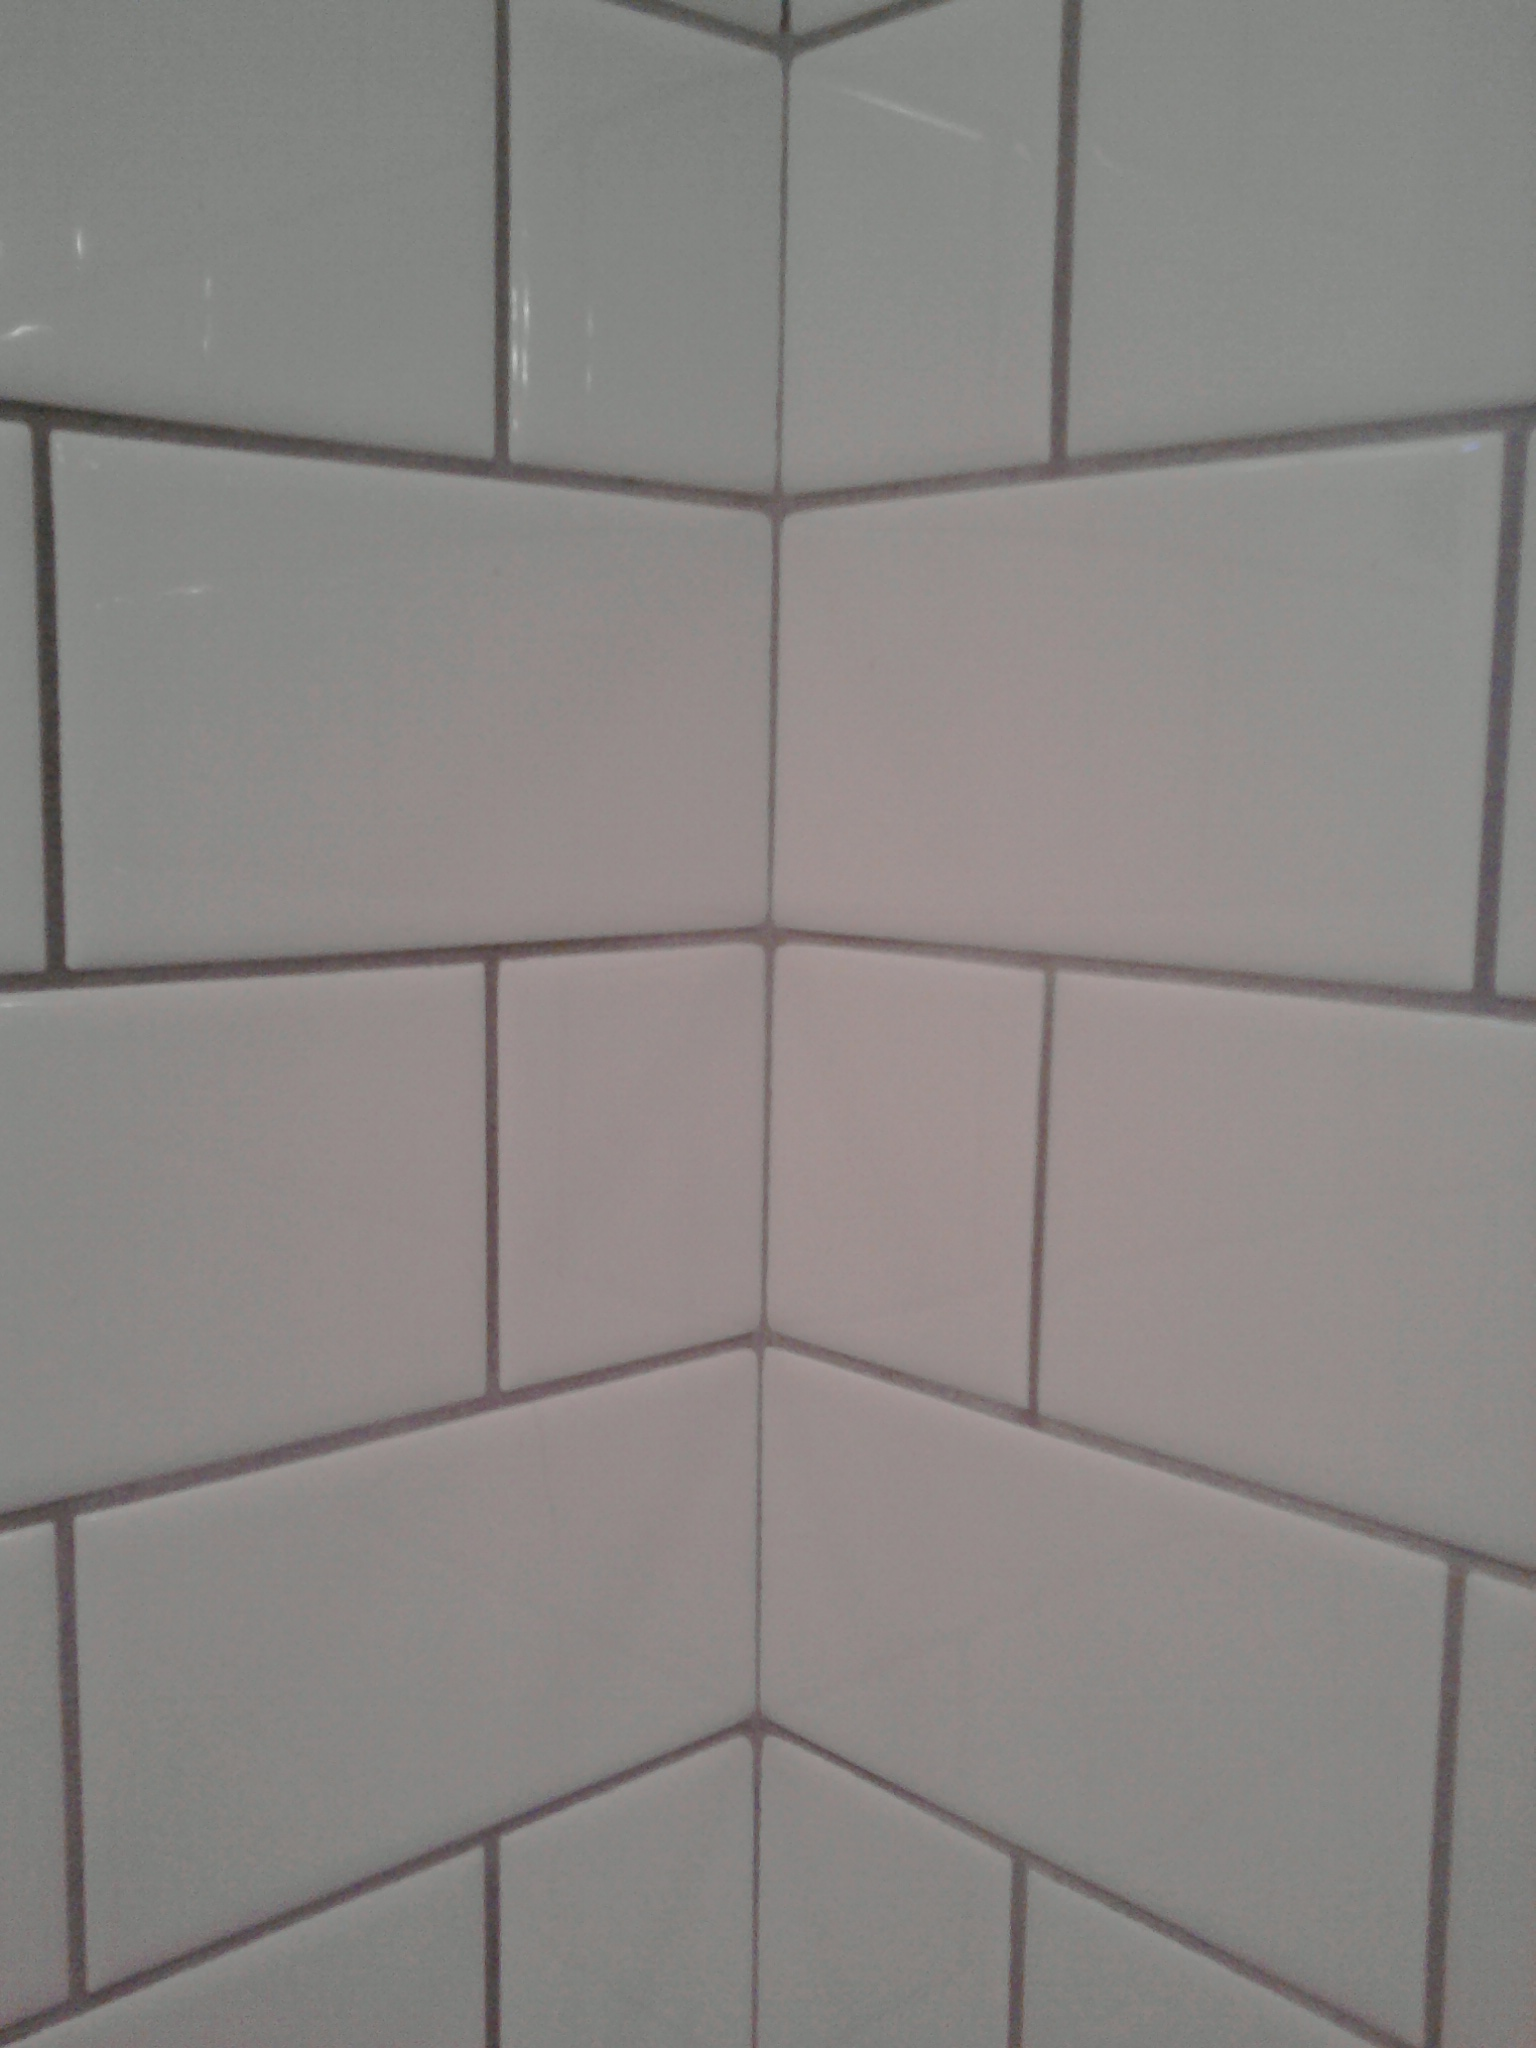 Using Grout As A Texture Old School Renovations Inc